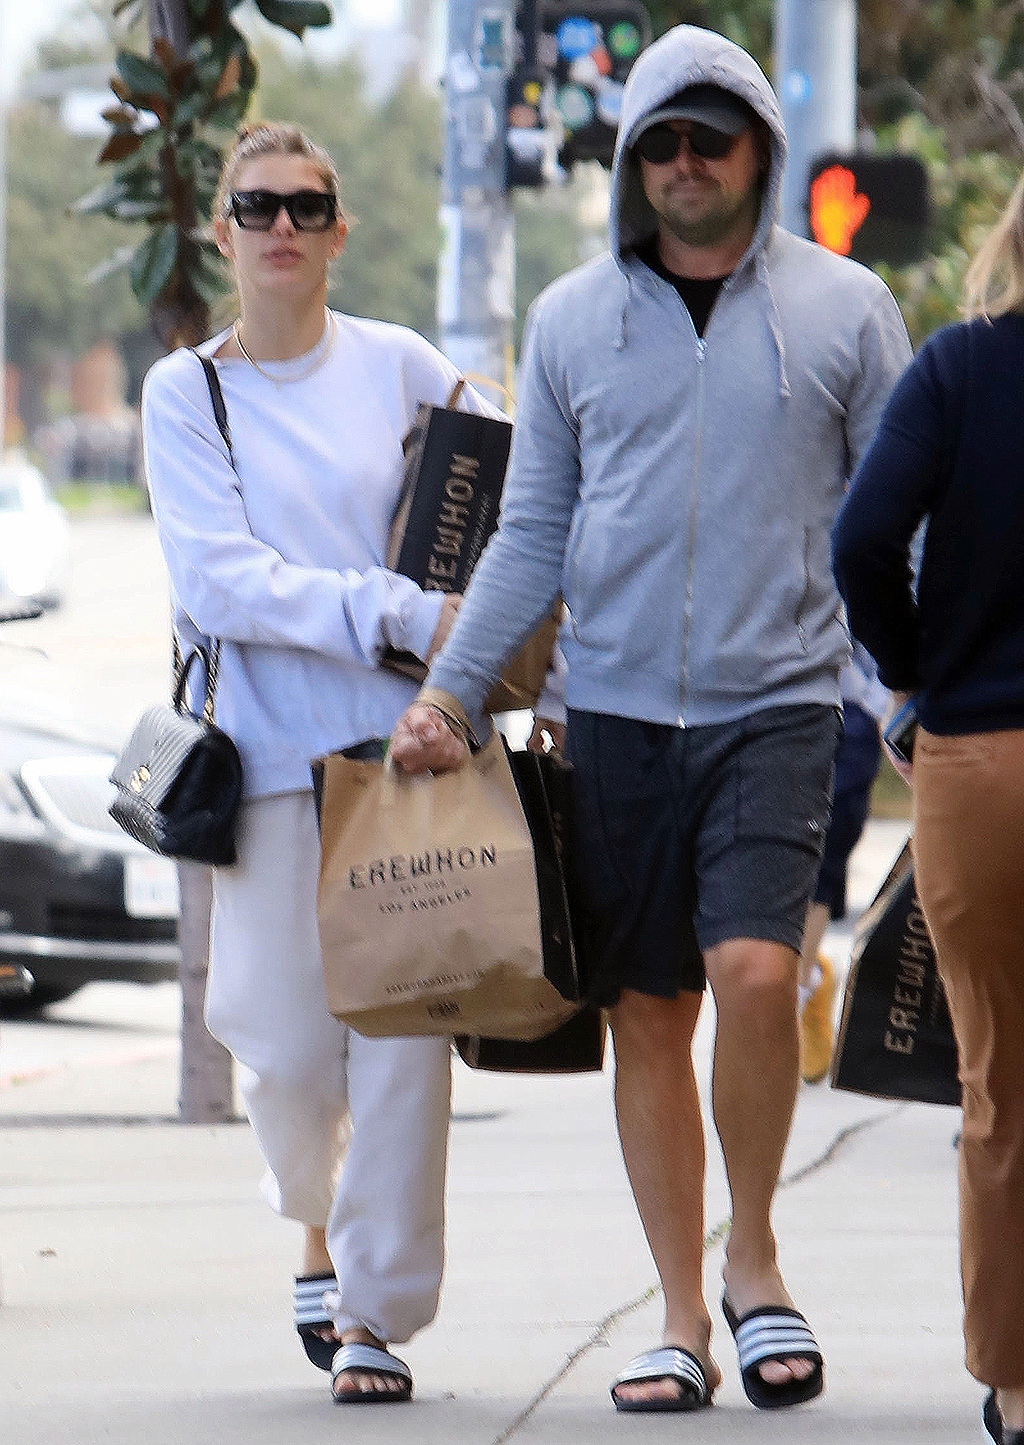 Leonardo DiCaprio and Camila Morrone step out for some grocery shopping in Los Angeles wearing matching slides. DiCaprio, 45, kept a low profile in a baseball cap, grey hoodie, and Alo shorts.